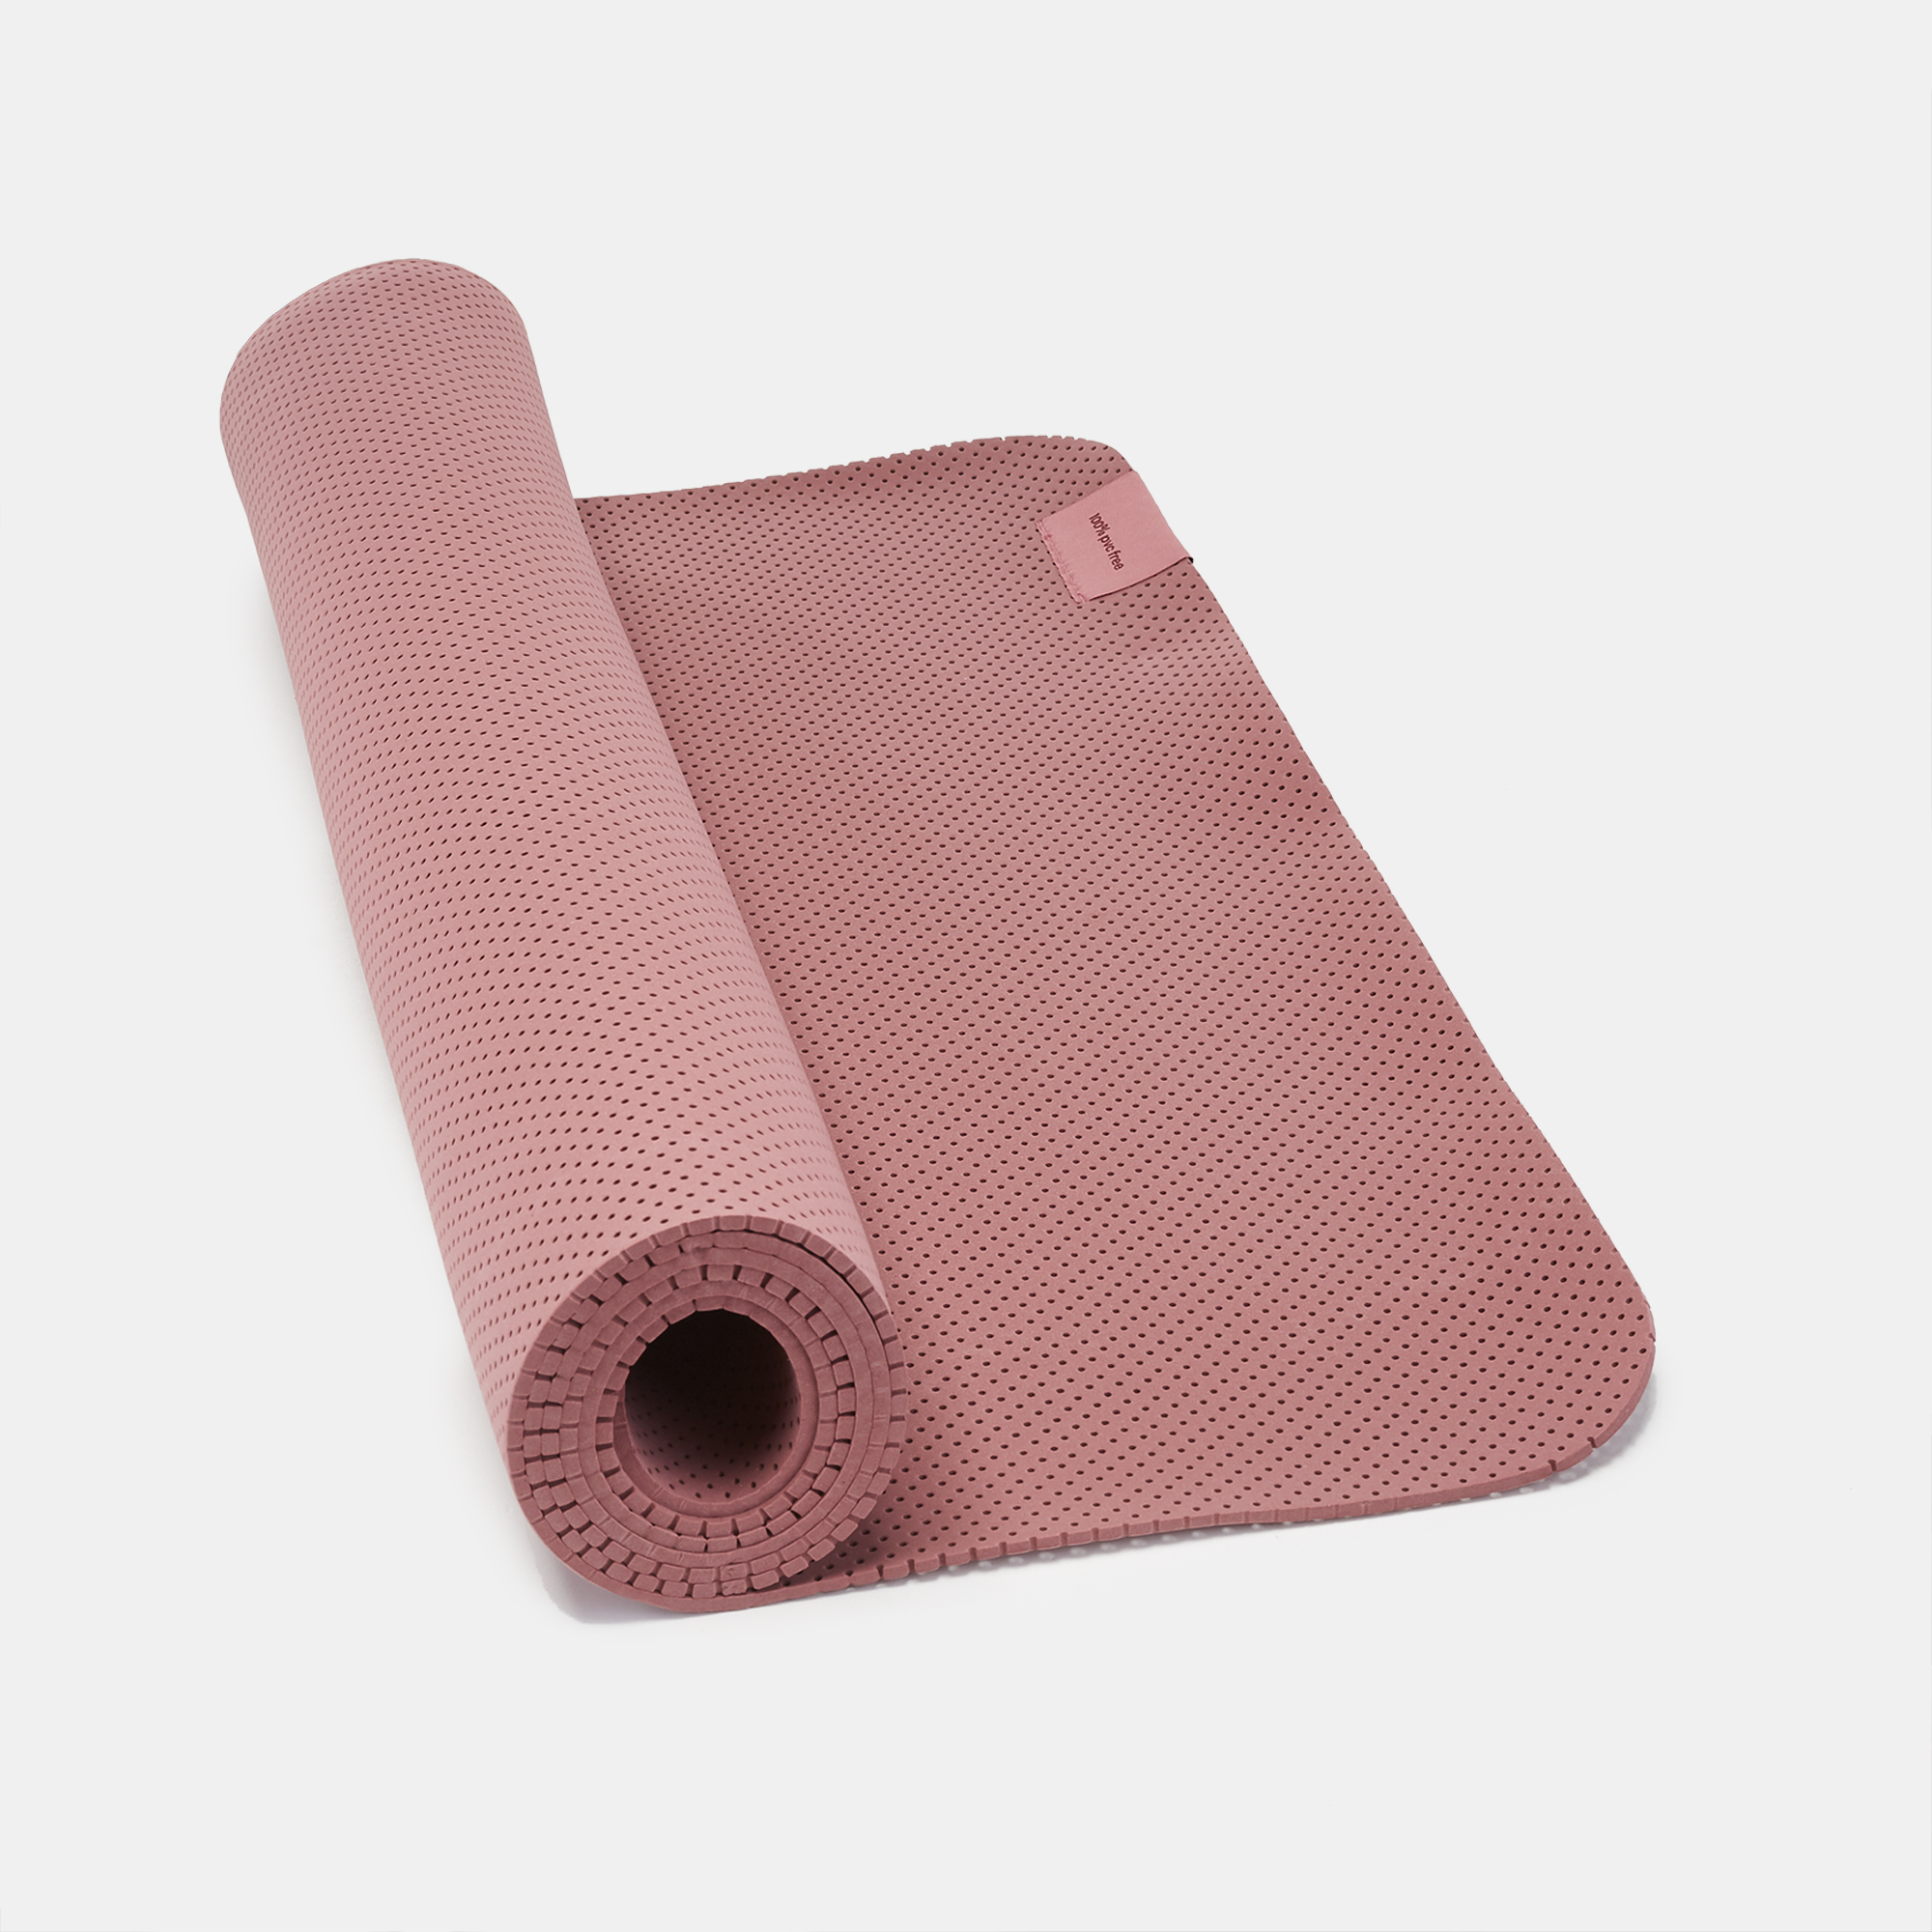 Adidas Yoga Mat Mats Equipment Yoga Sports Sss